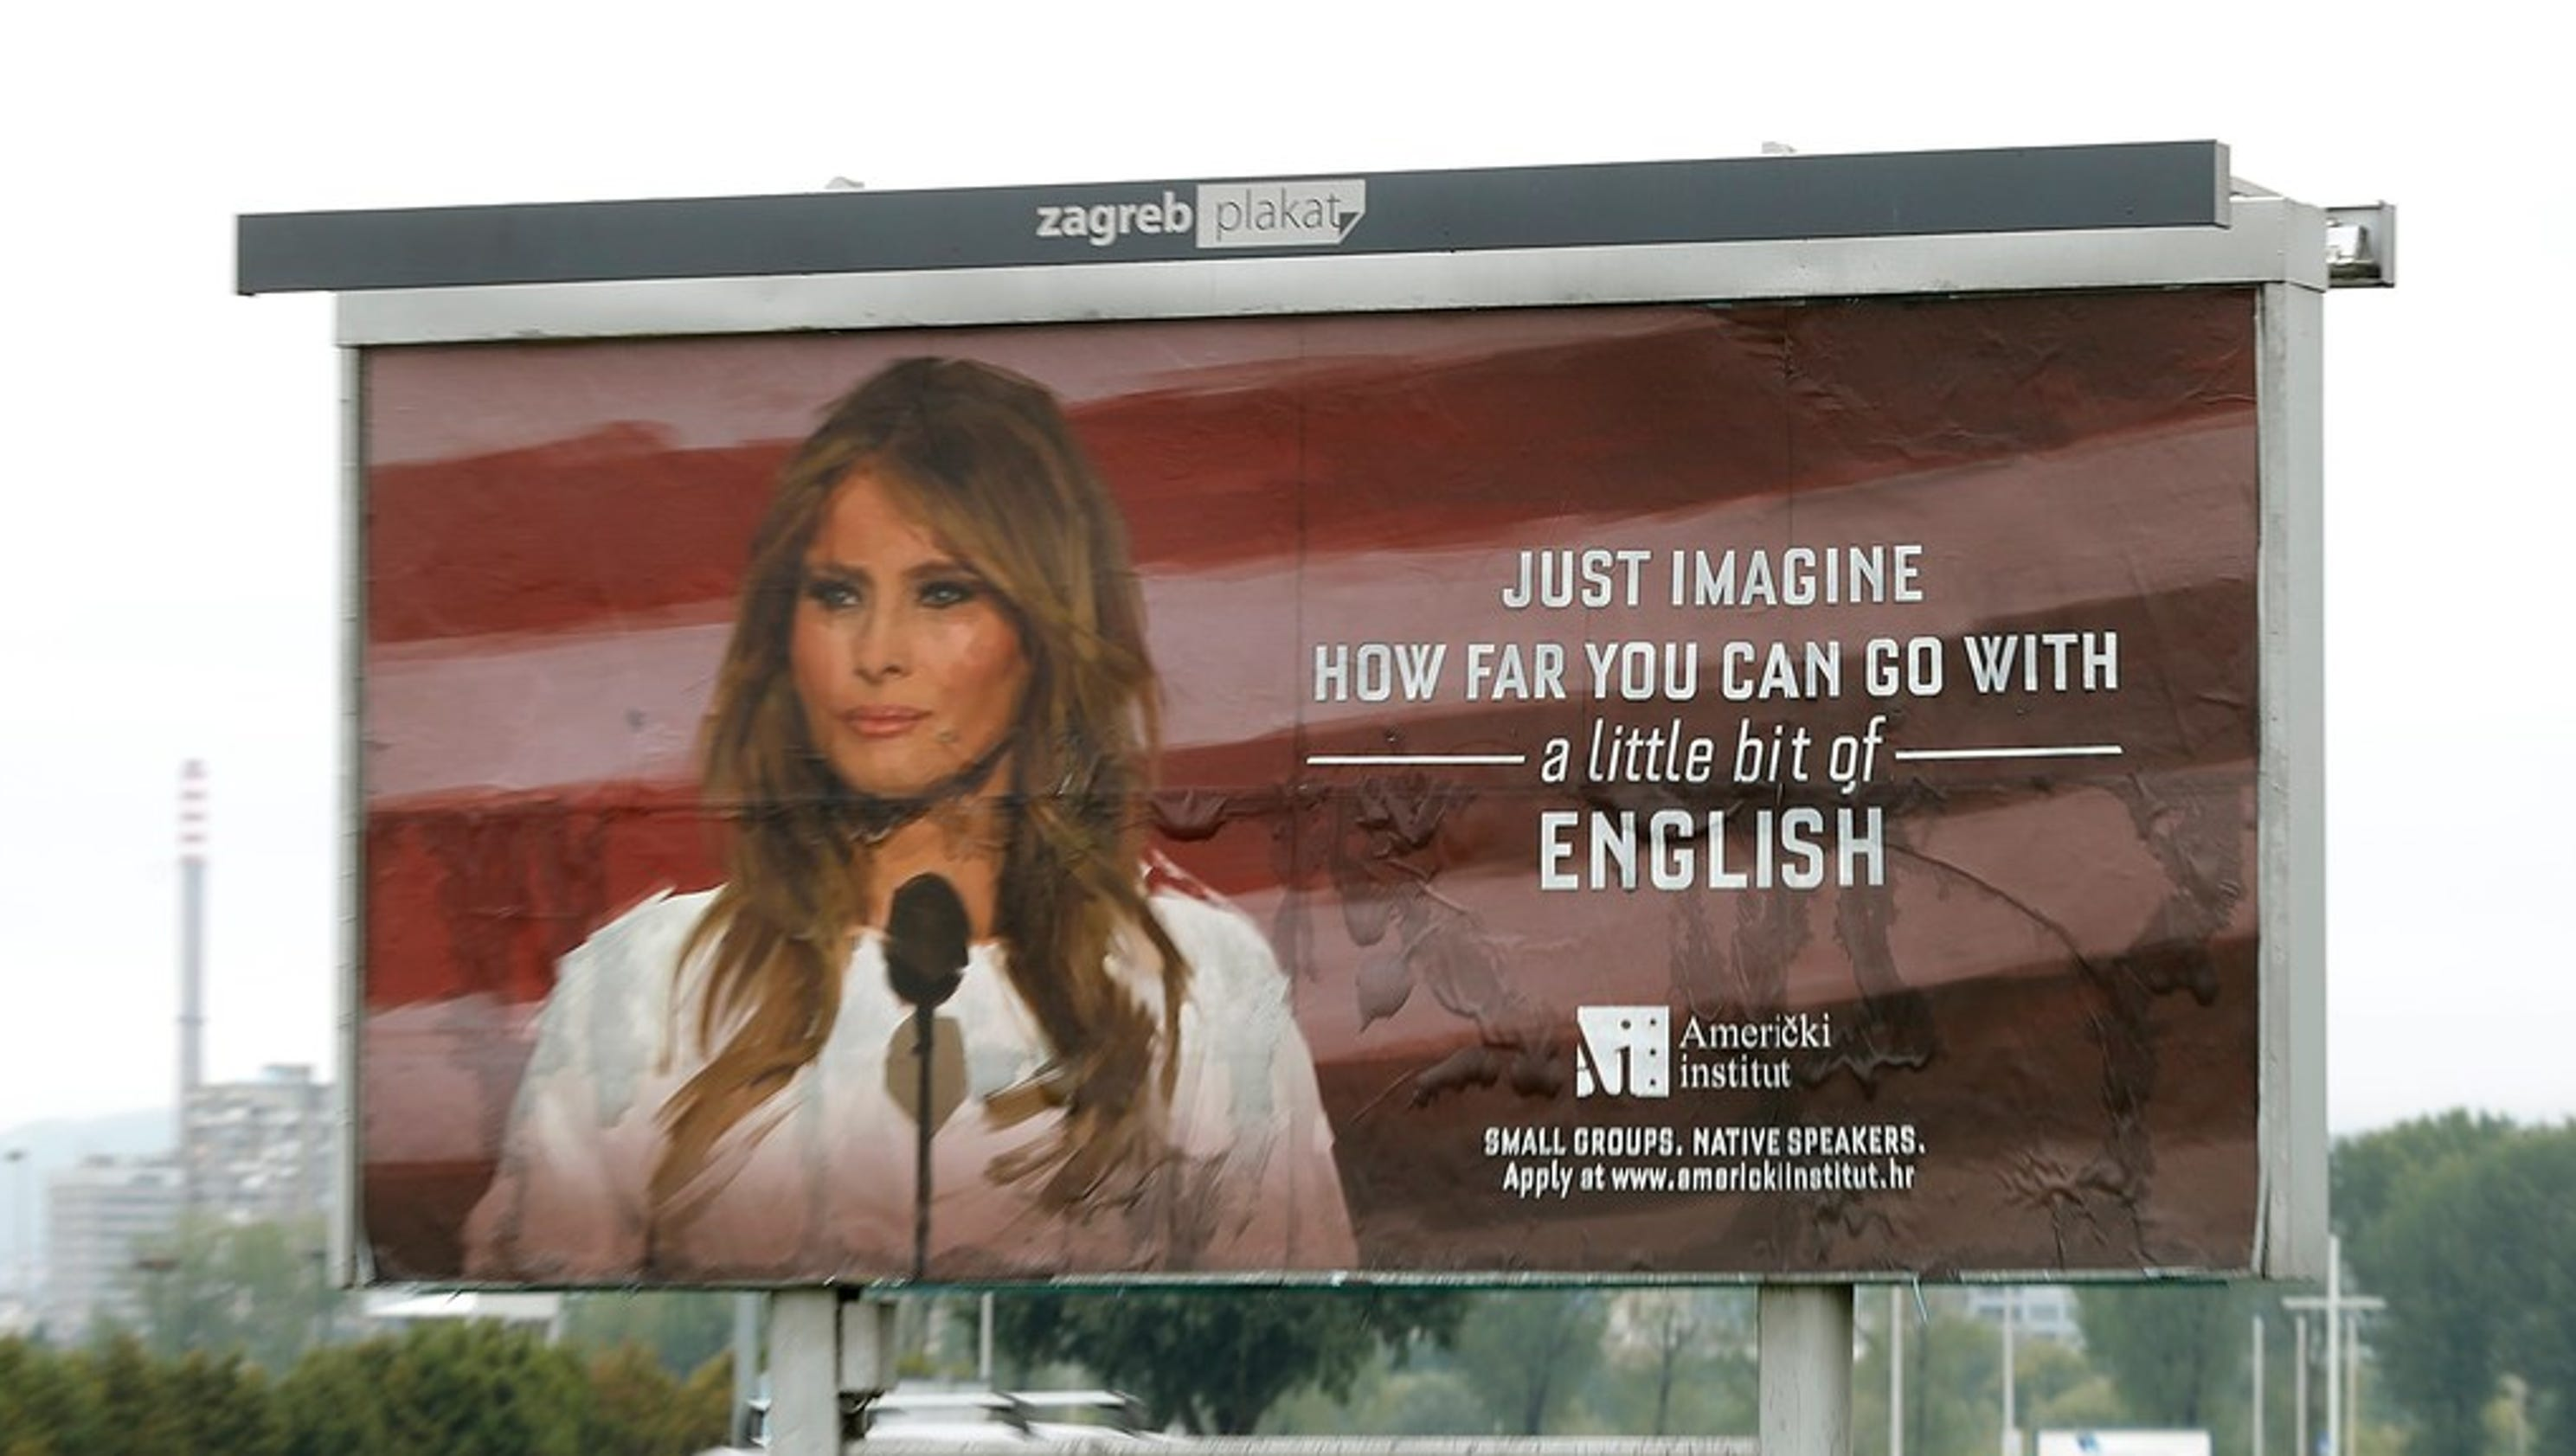 Melania Trump billboard removed in Croatia after legal action threatened